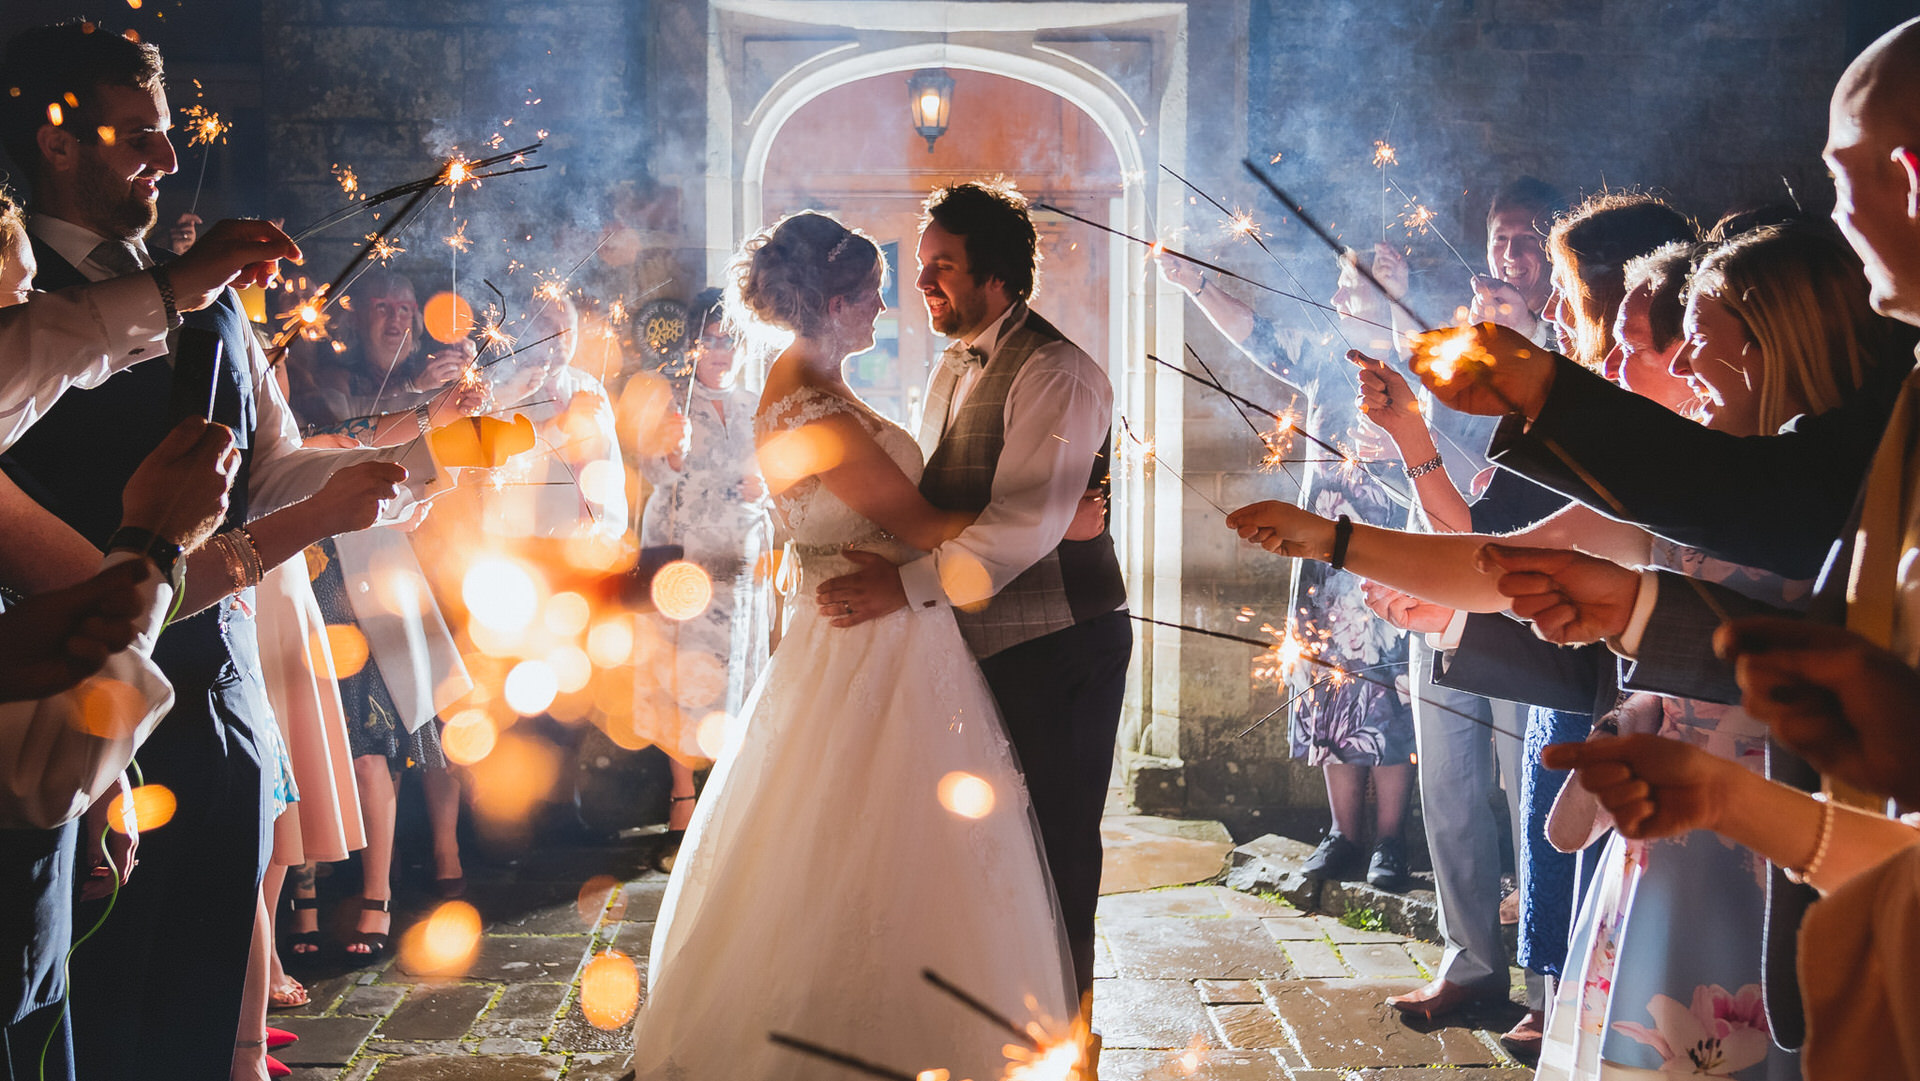 Wedding Photographers Cardiff at Bryngarw House with Sparklers